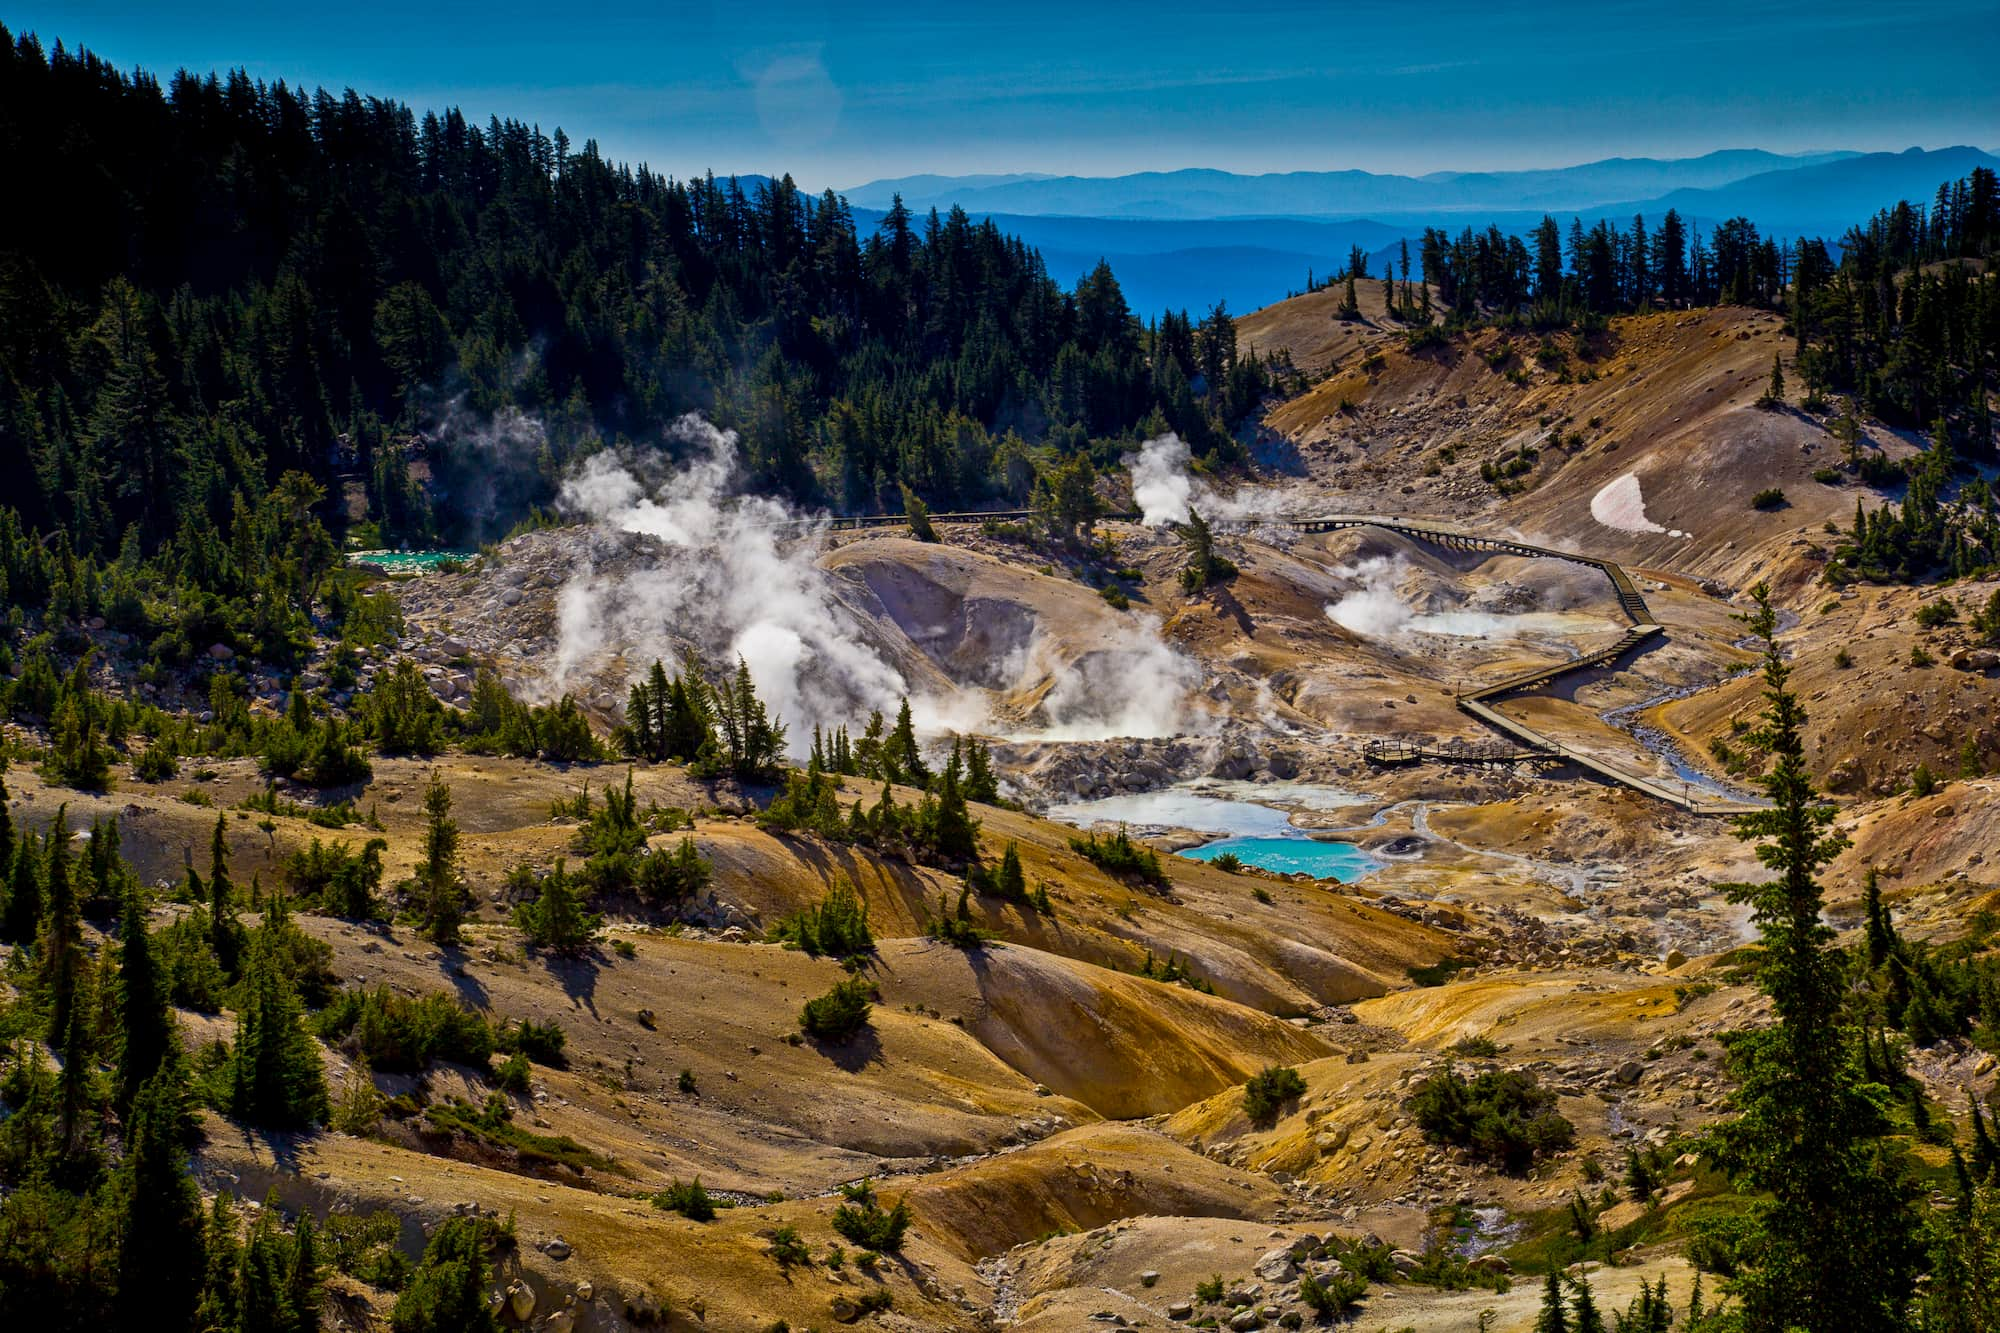 Textured geothermal valley with yellow tinted ground, bright blue ponds, winding path, and mountains in the background.